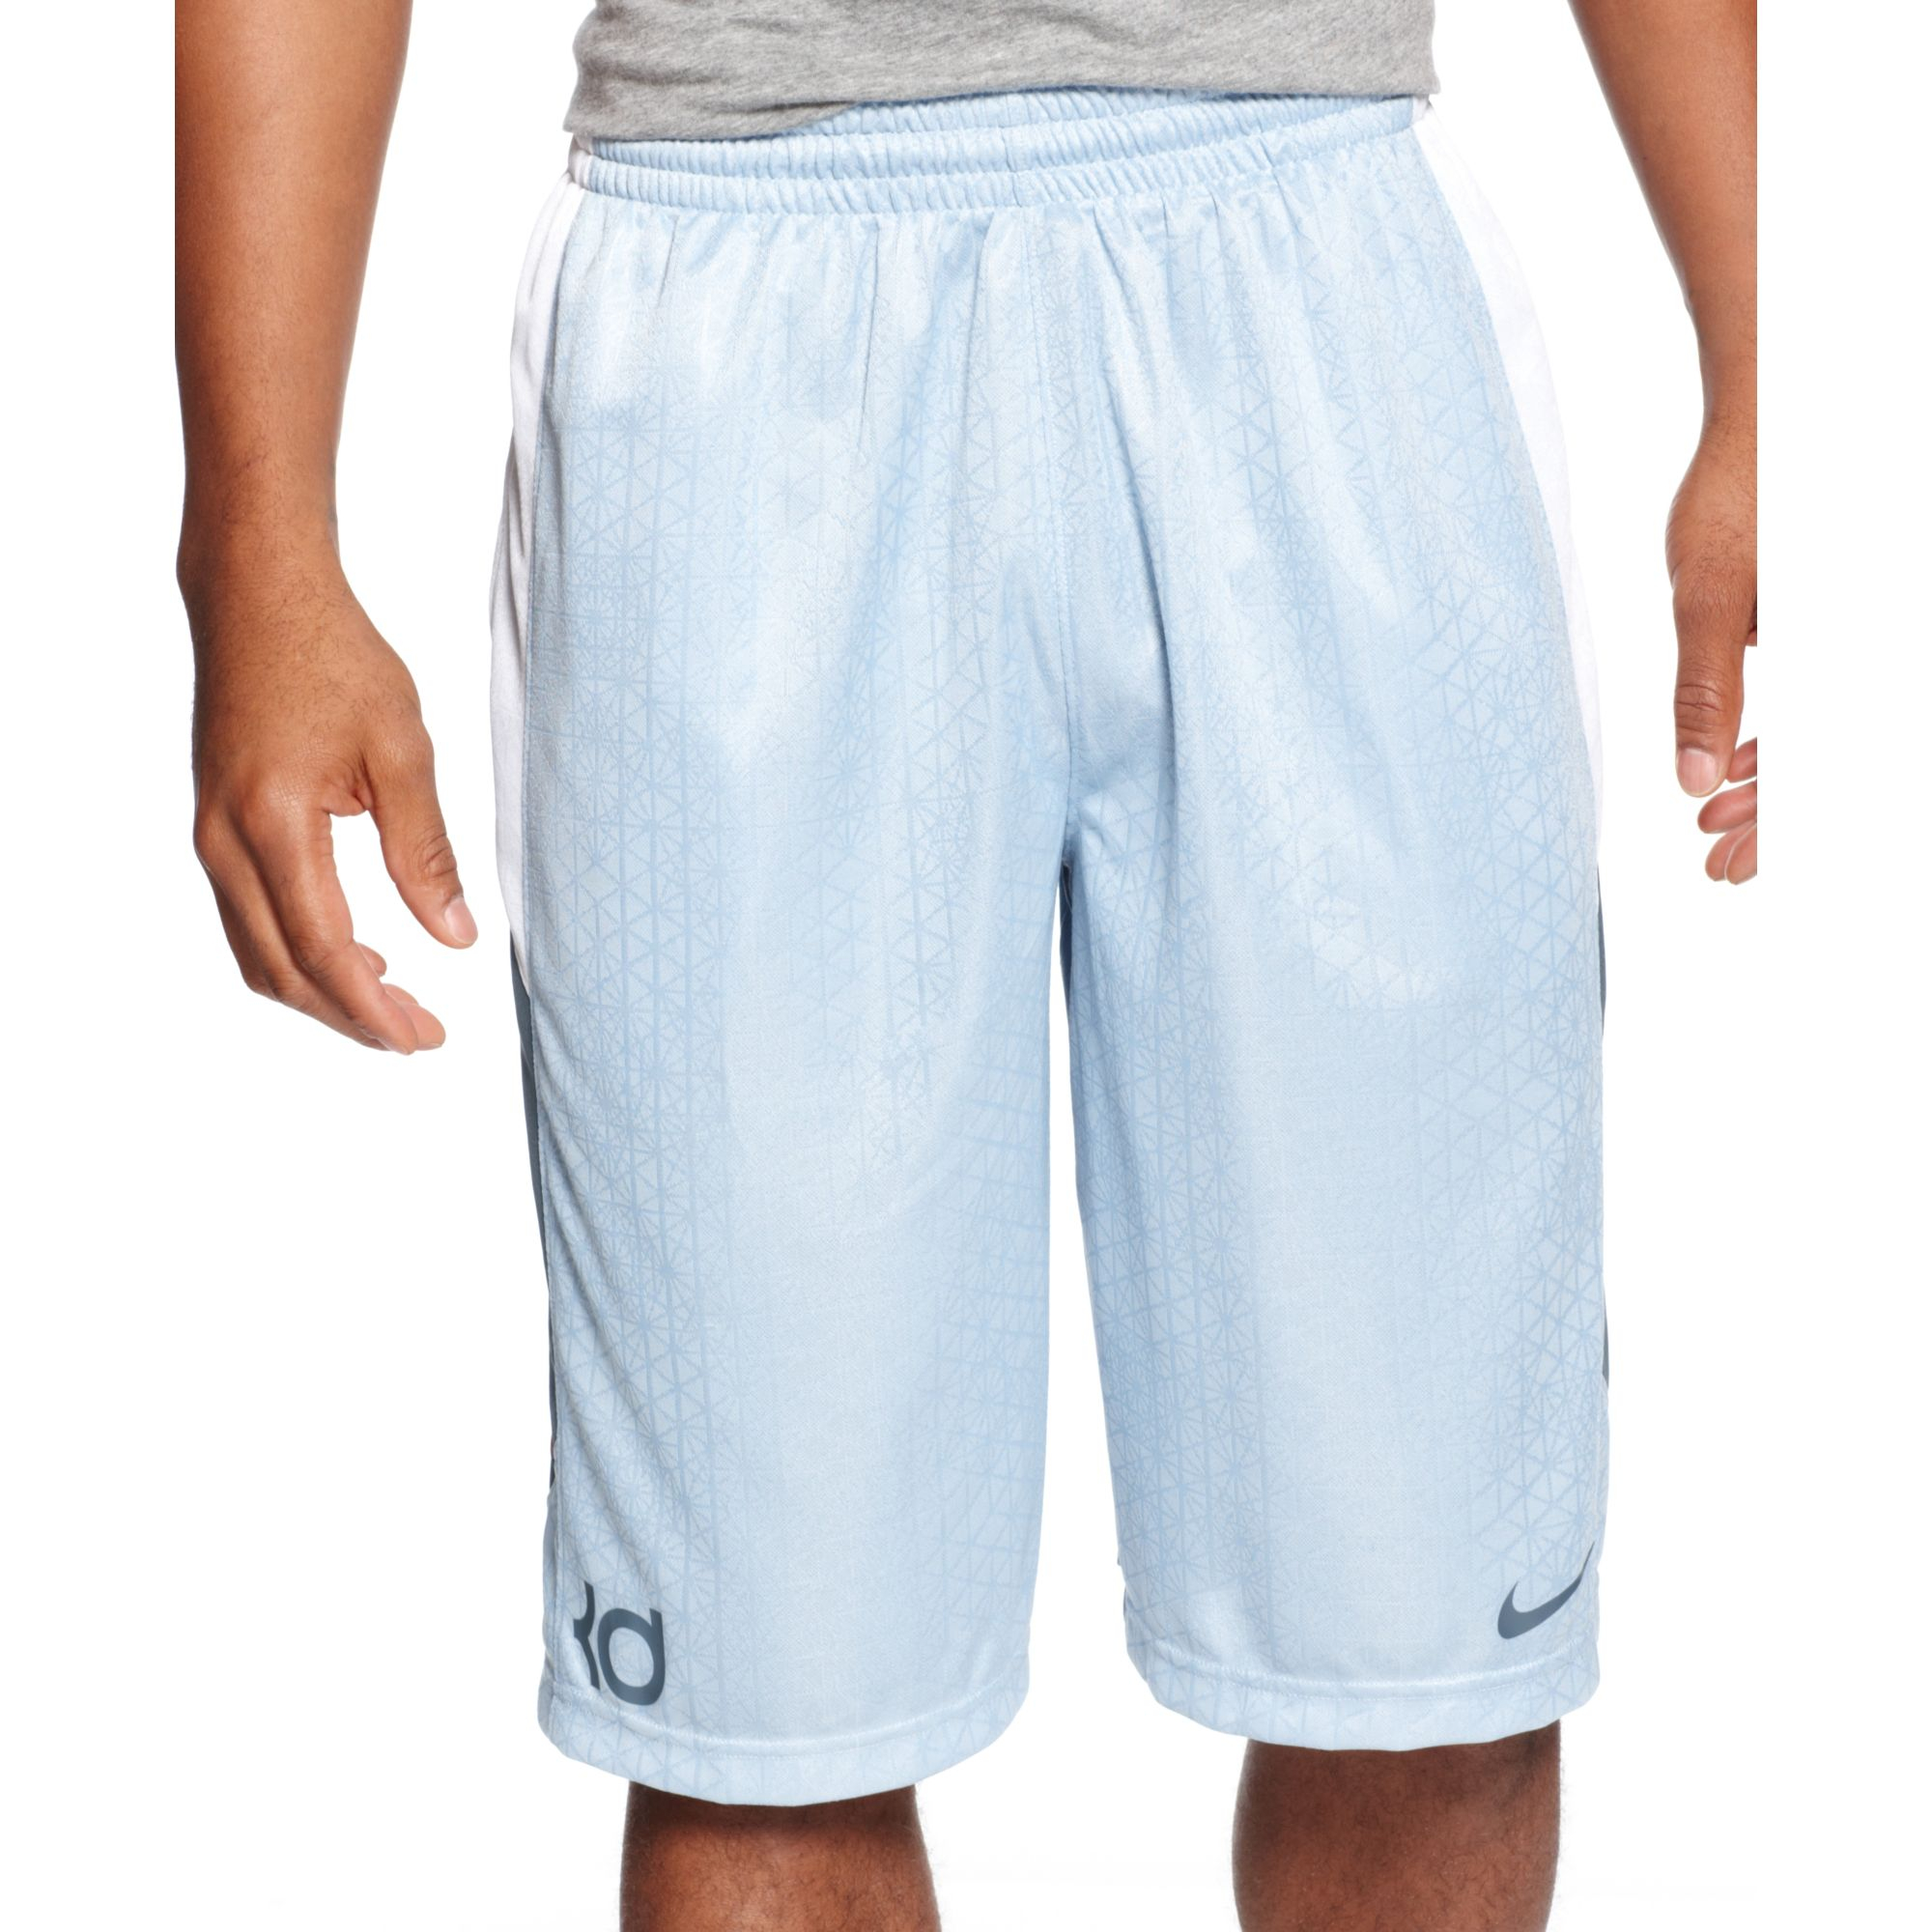 0c88b2f82 Nike Kevin Durant 6 Unlimited Basketball Shorts in Blue for Men - Lyst